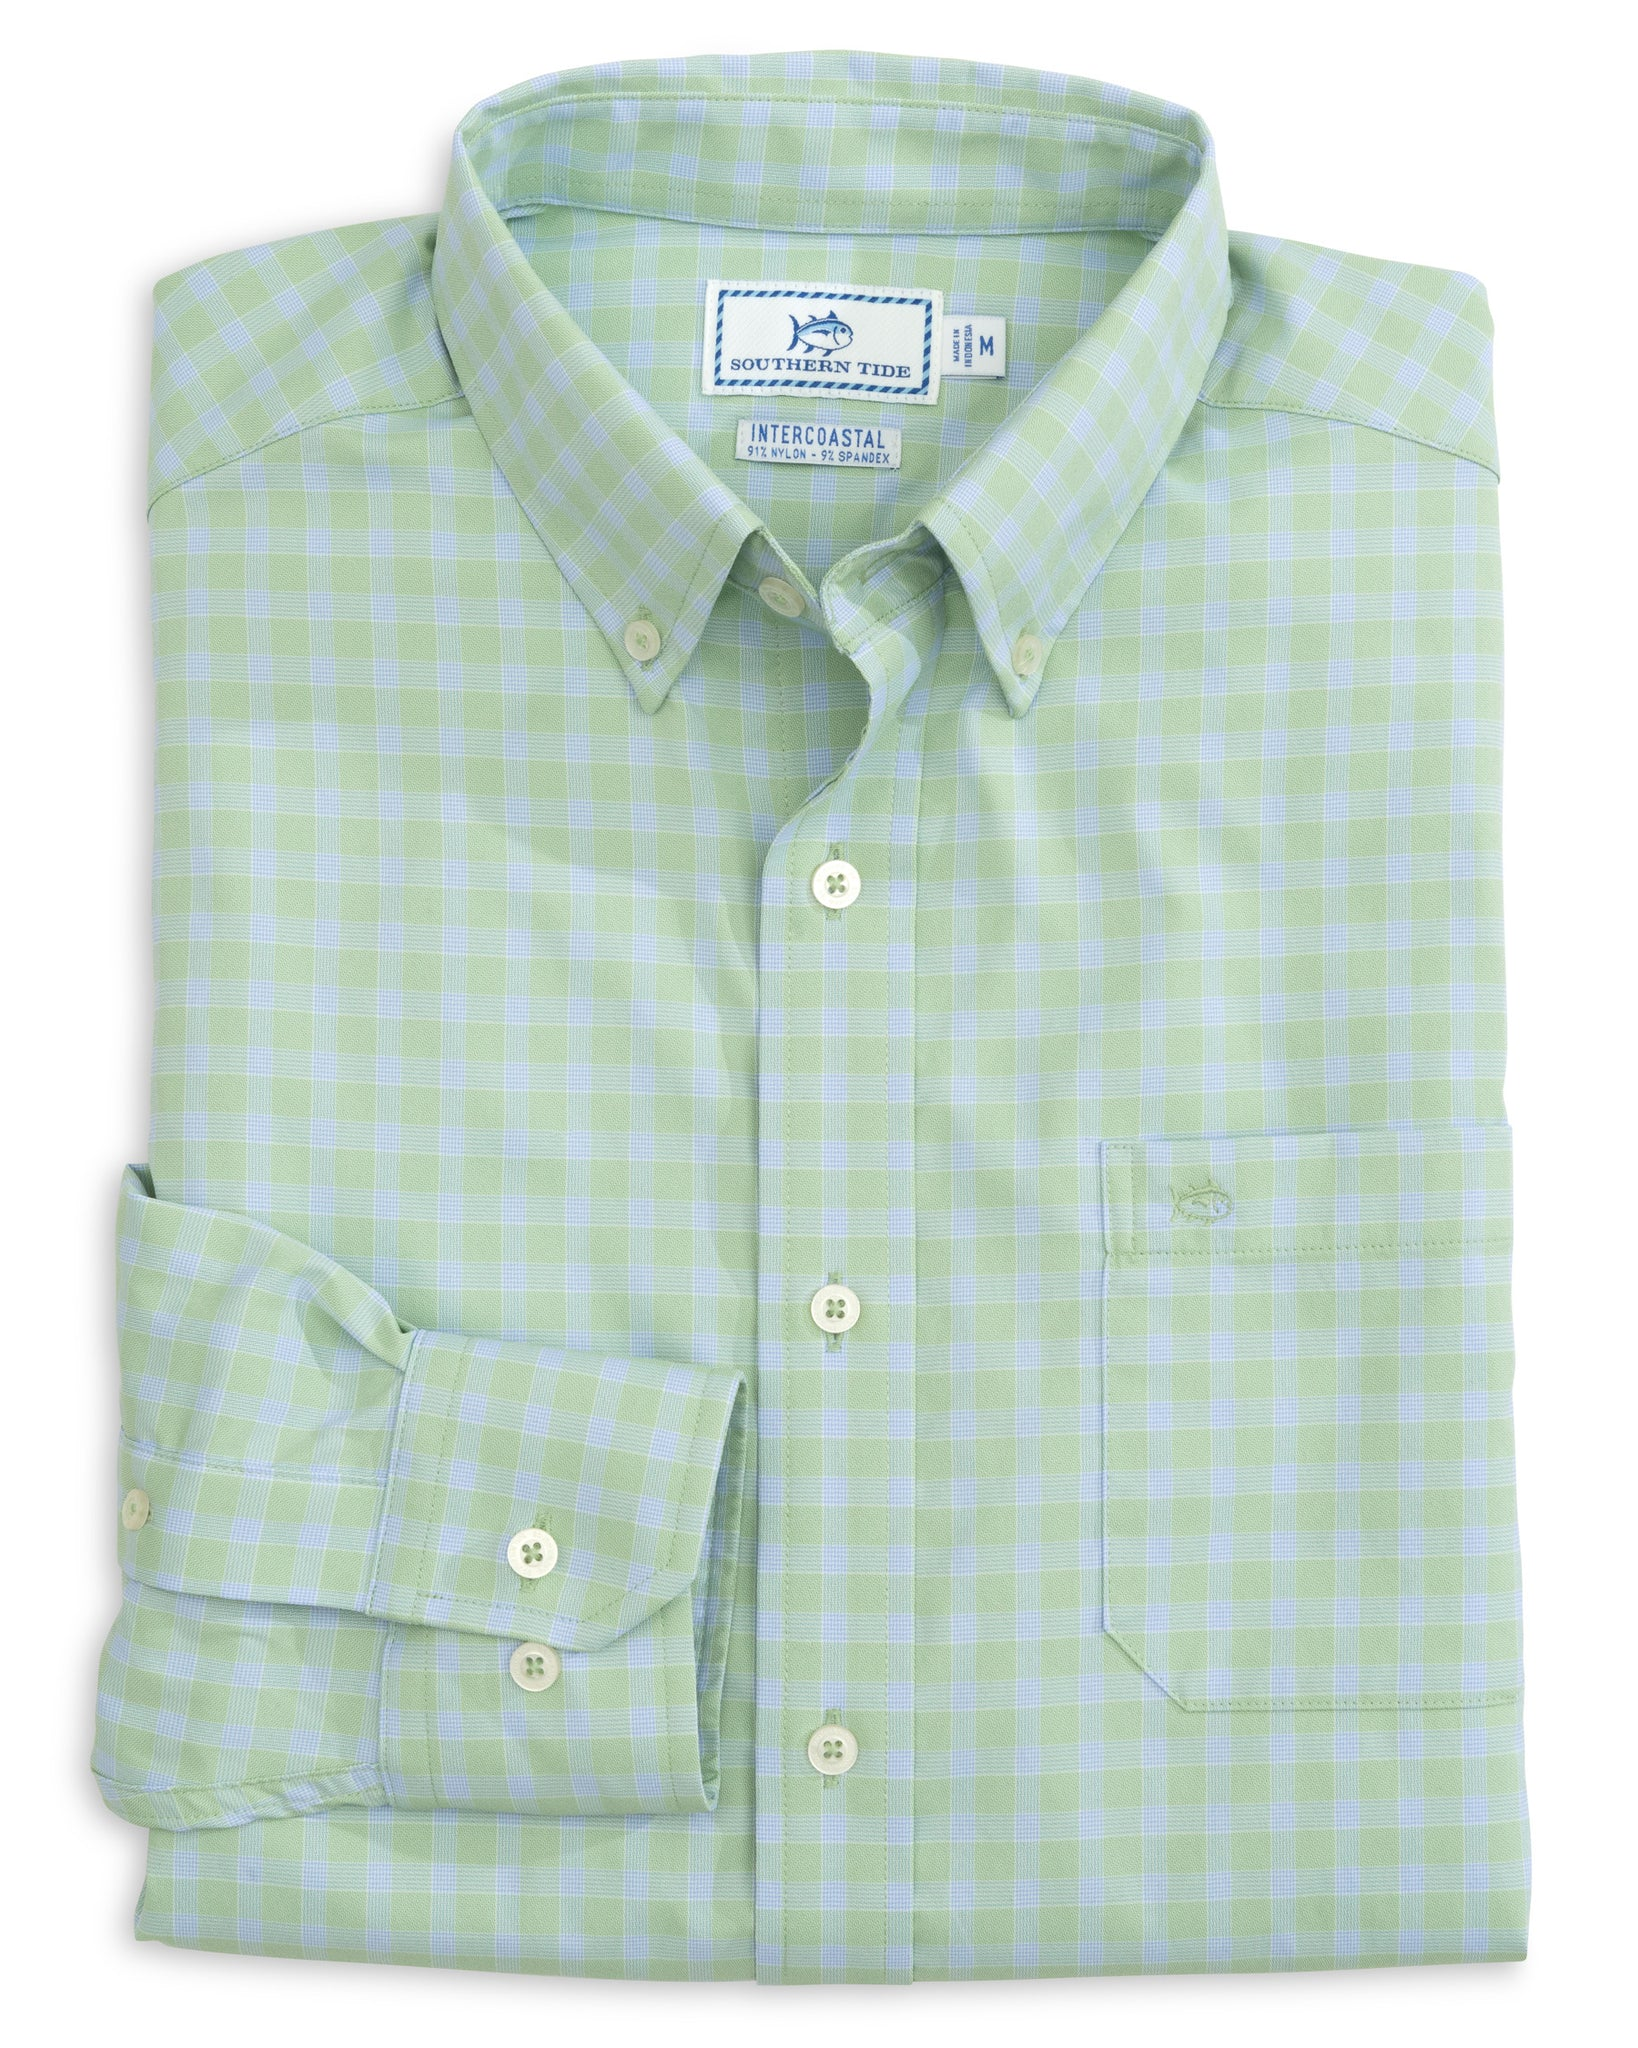 Men's Astern Check Intercoastal Perfomance Sport Shirt